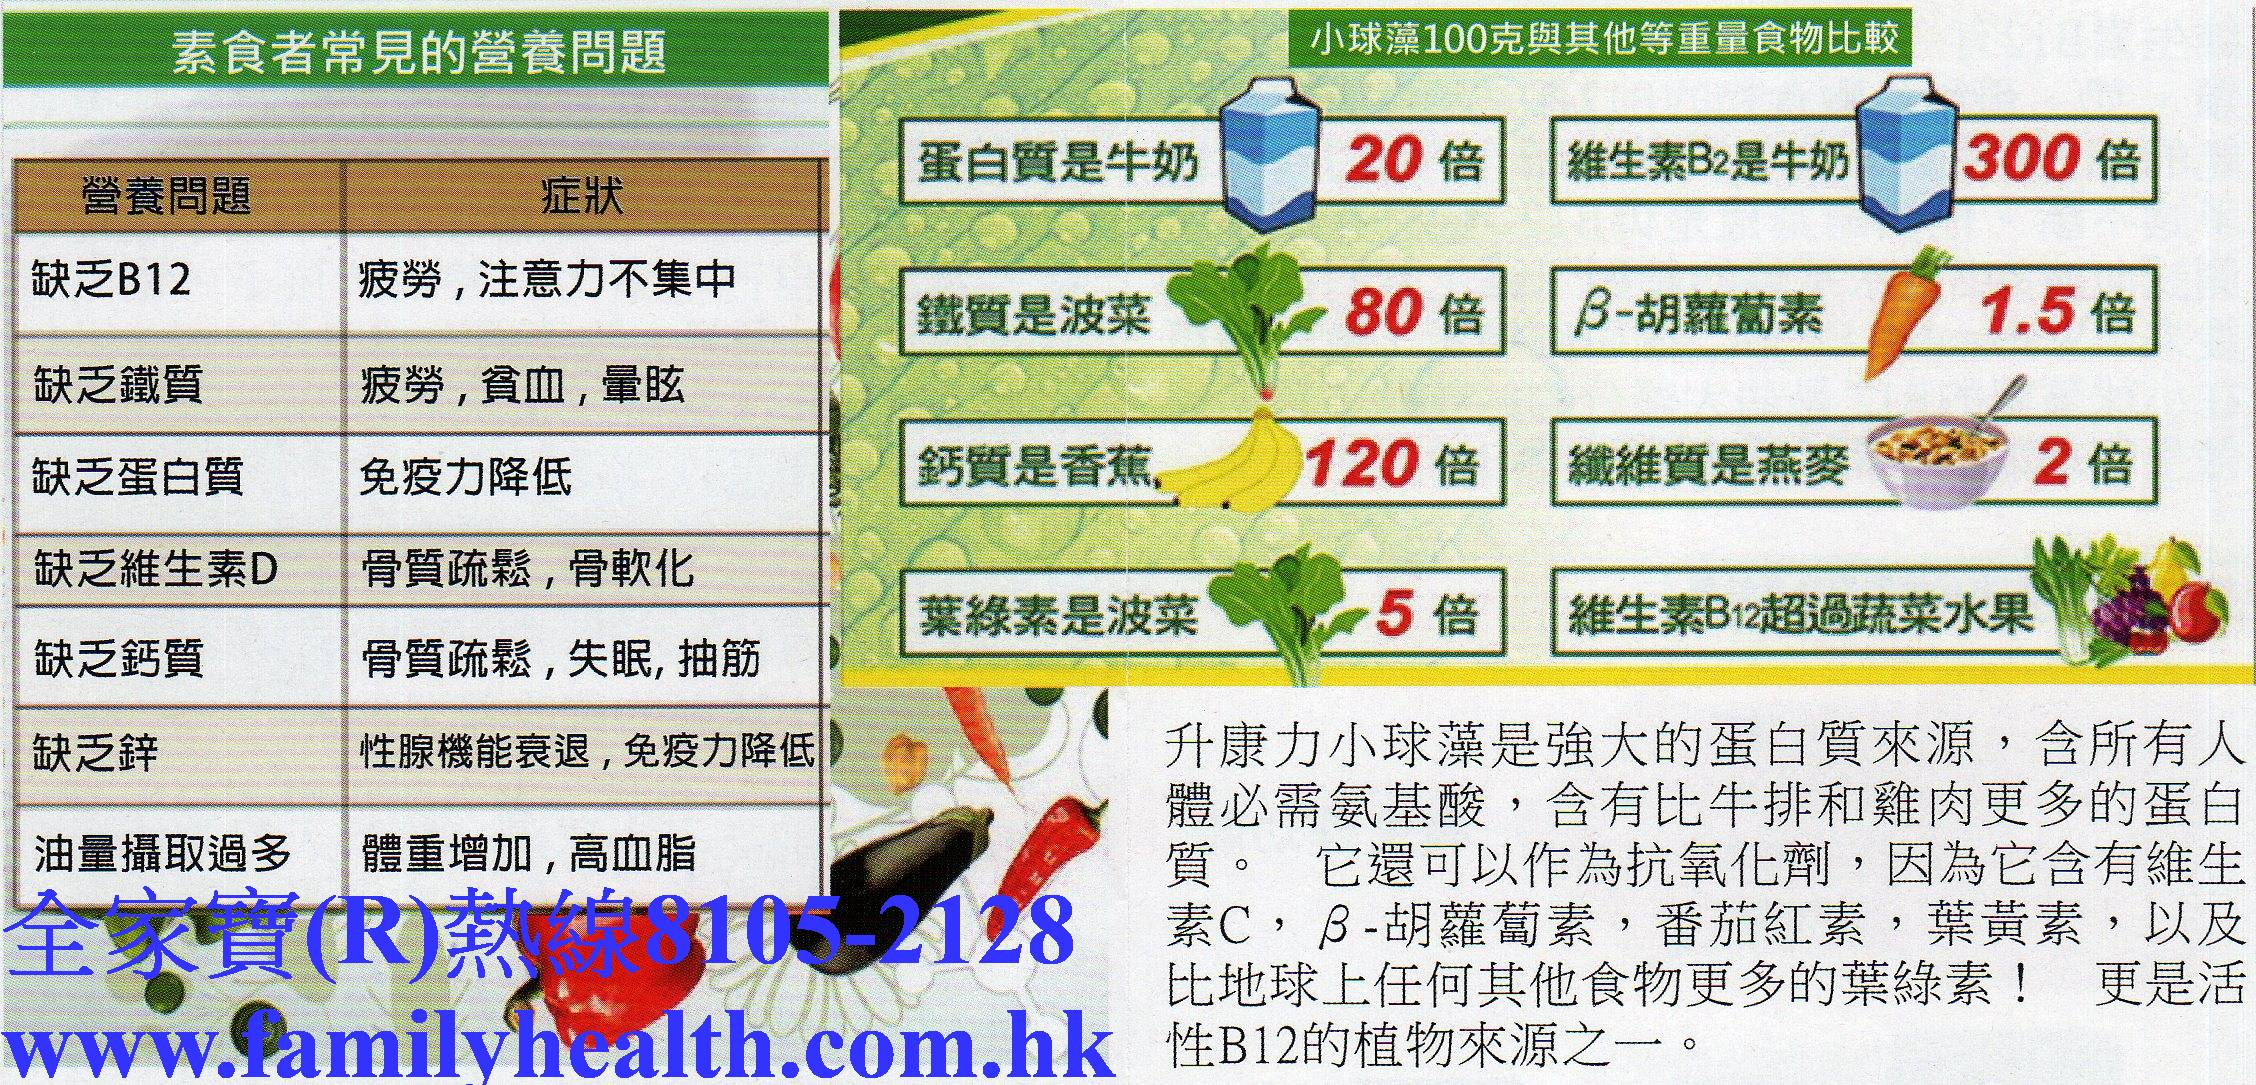 http://www.familyhealth.com.hk/files/full/1020_2.jpg